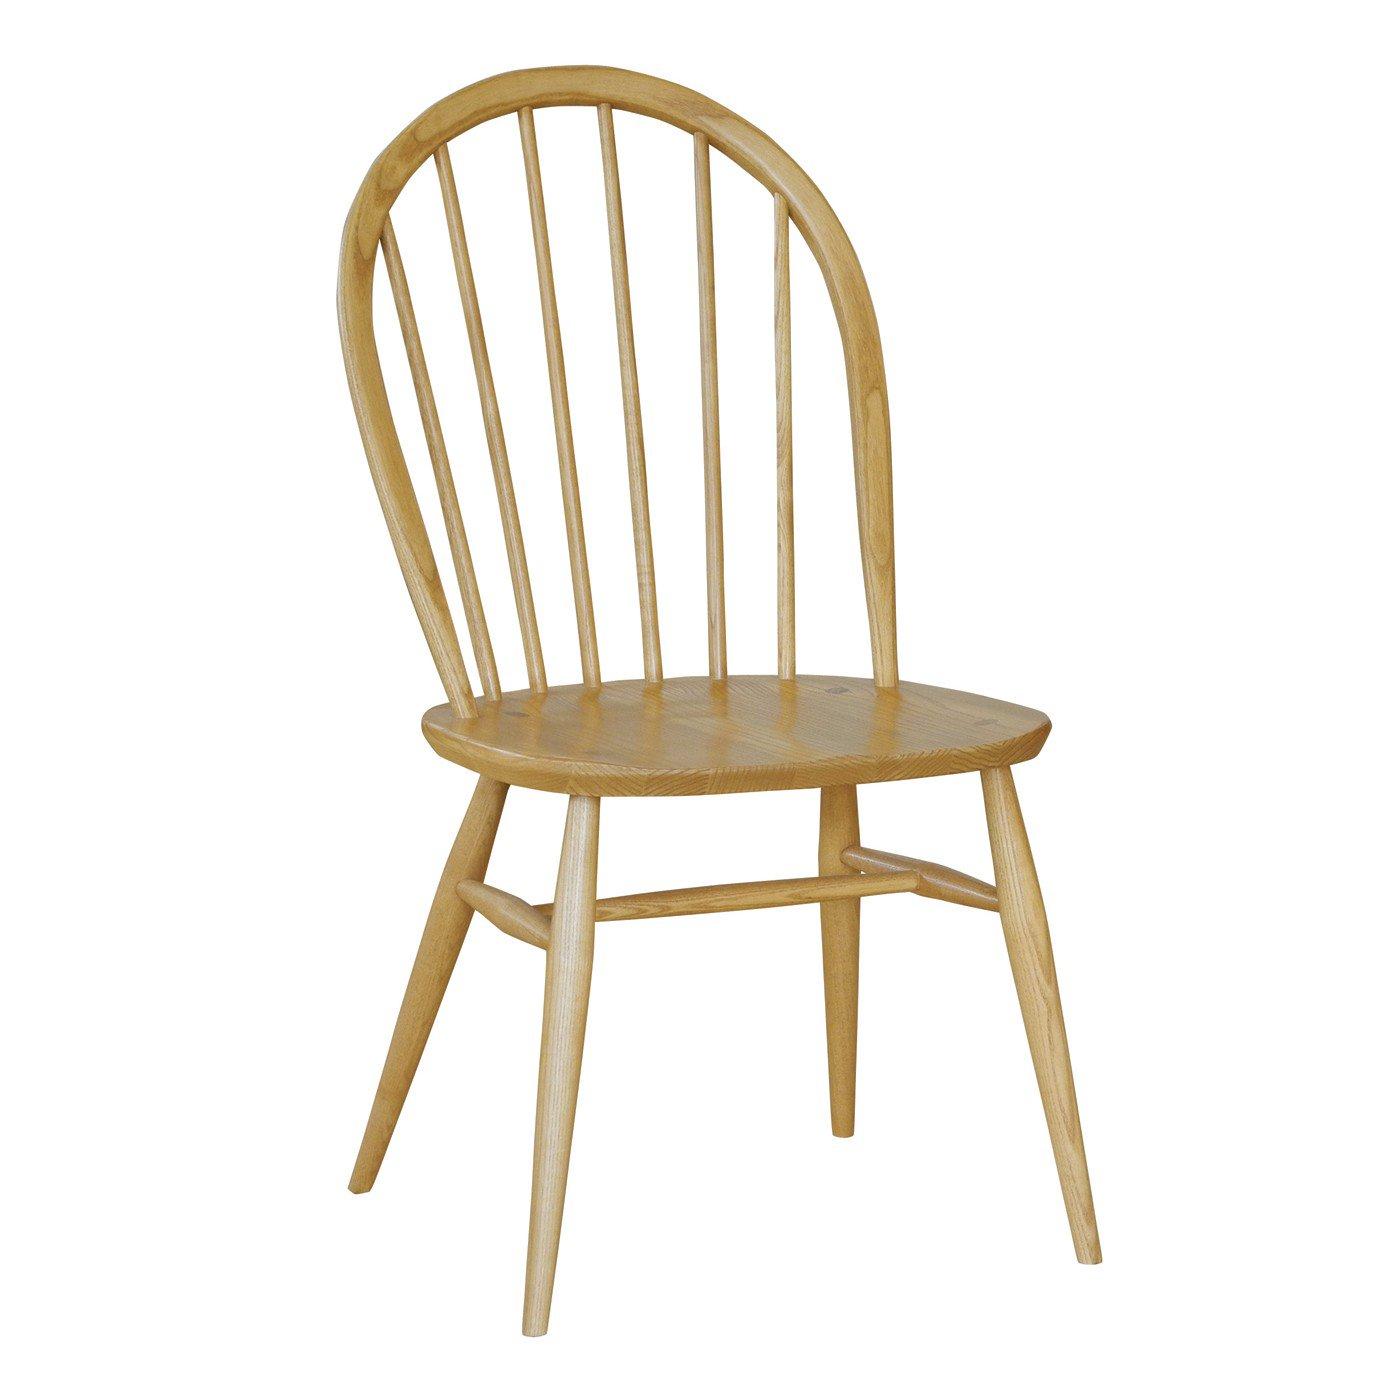 Ercol style Windsor Chair -  www.heals.com